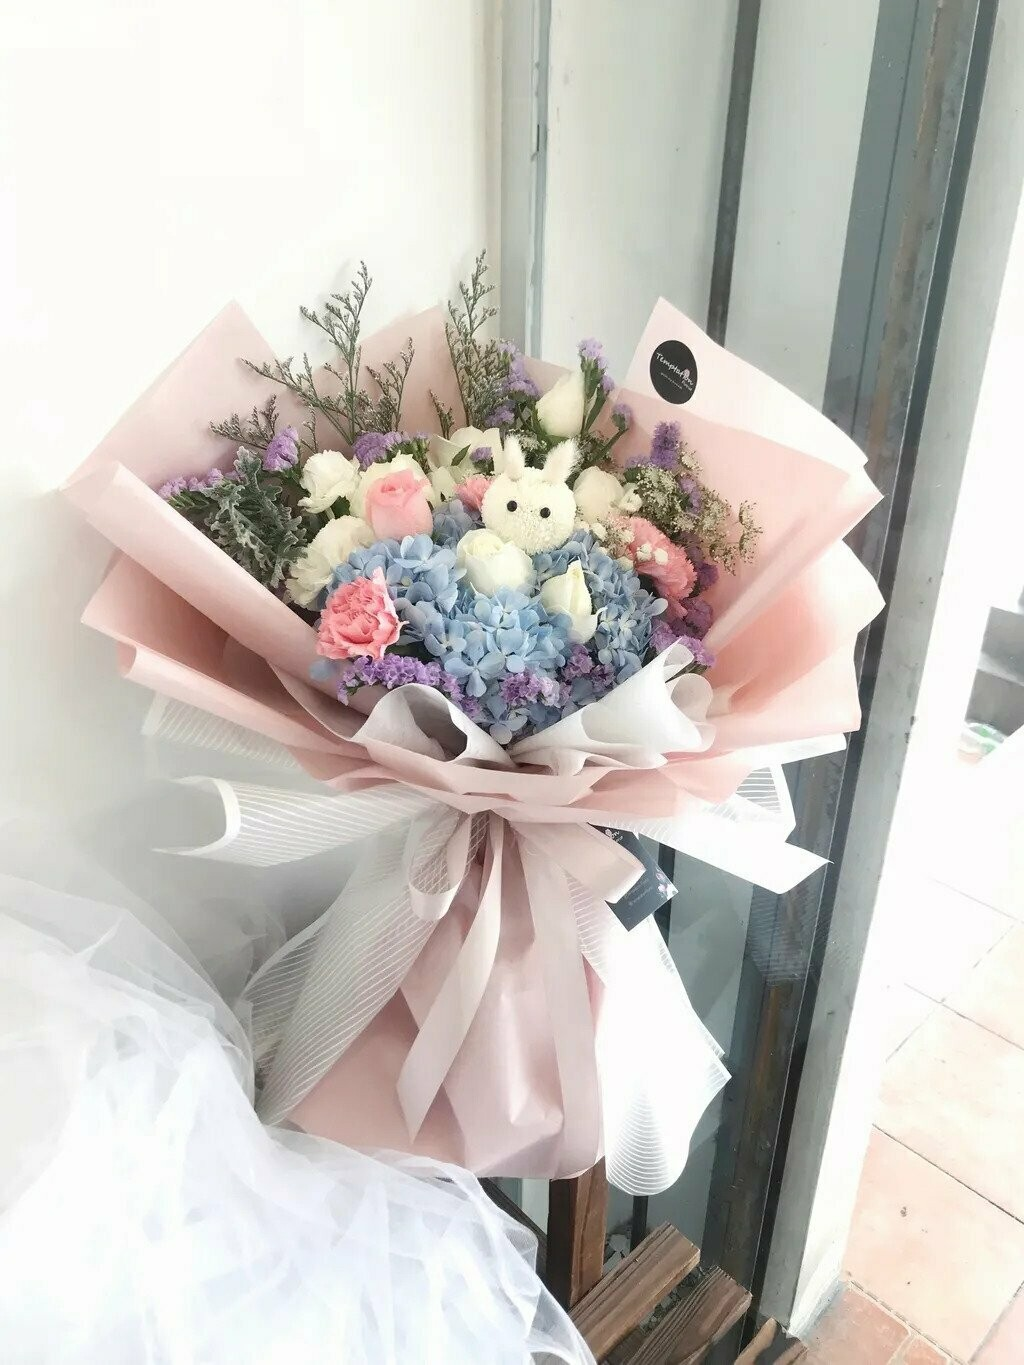 Pasterious (By: Temptation Florist from Seremban)